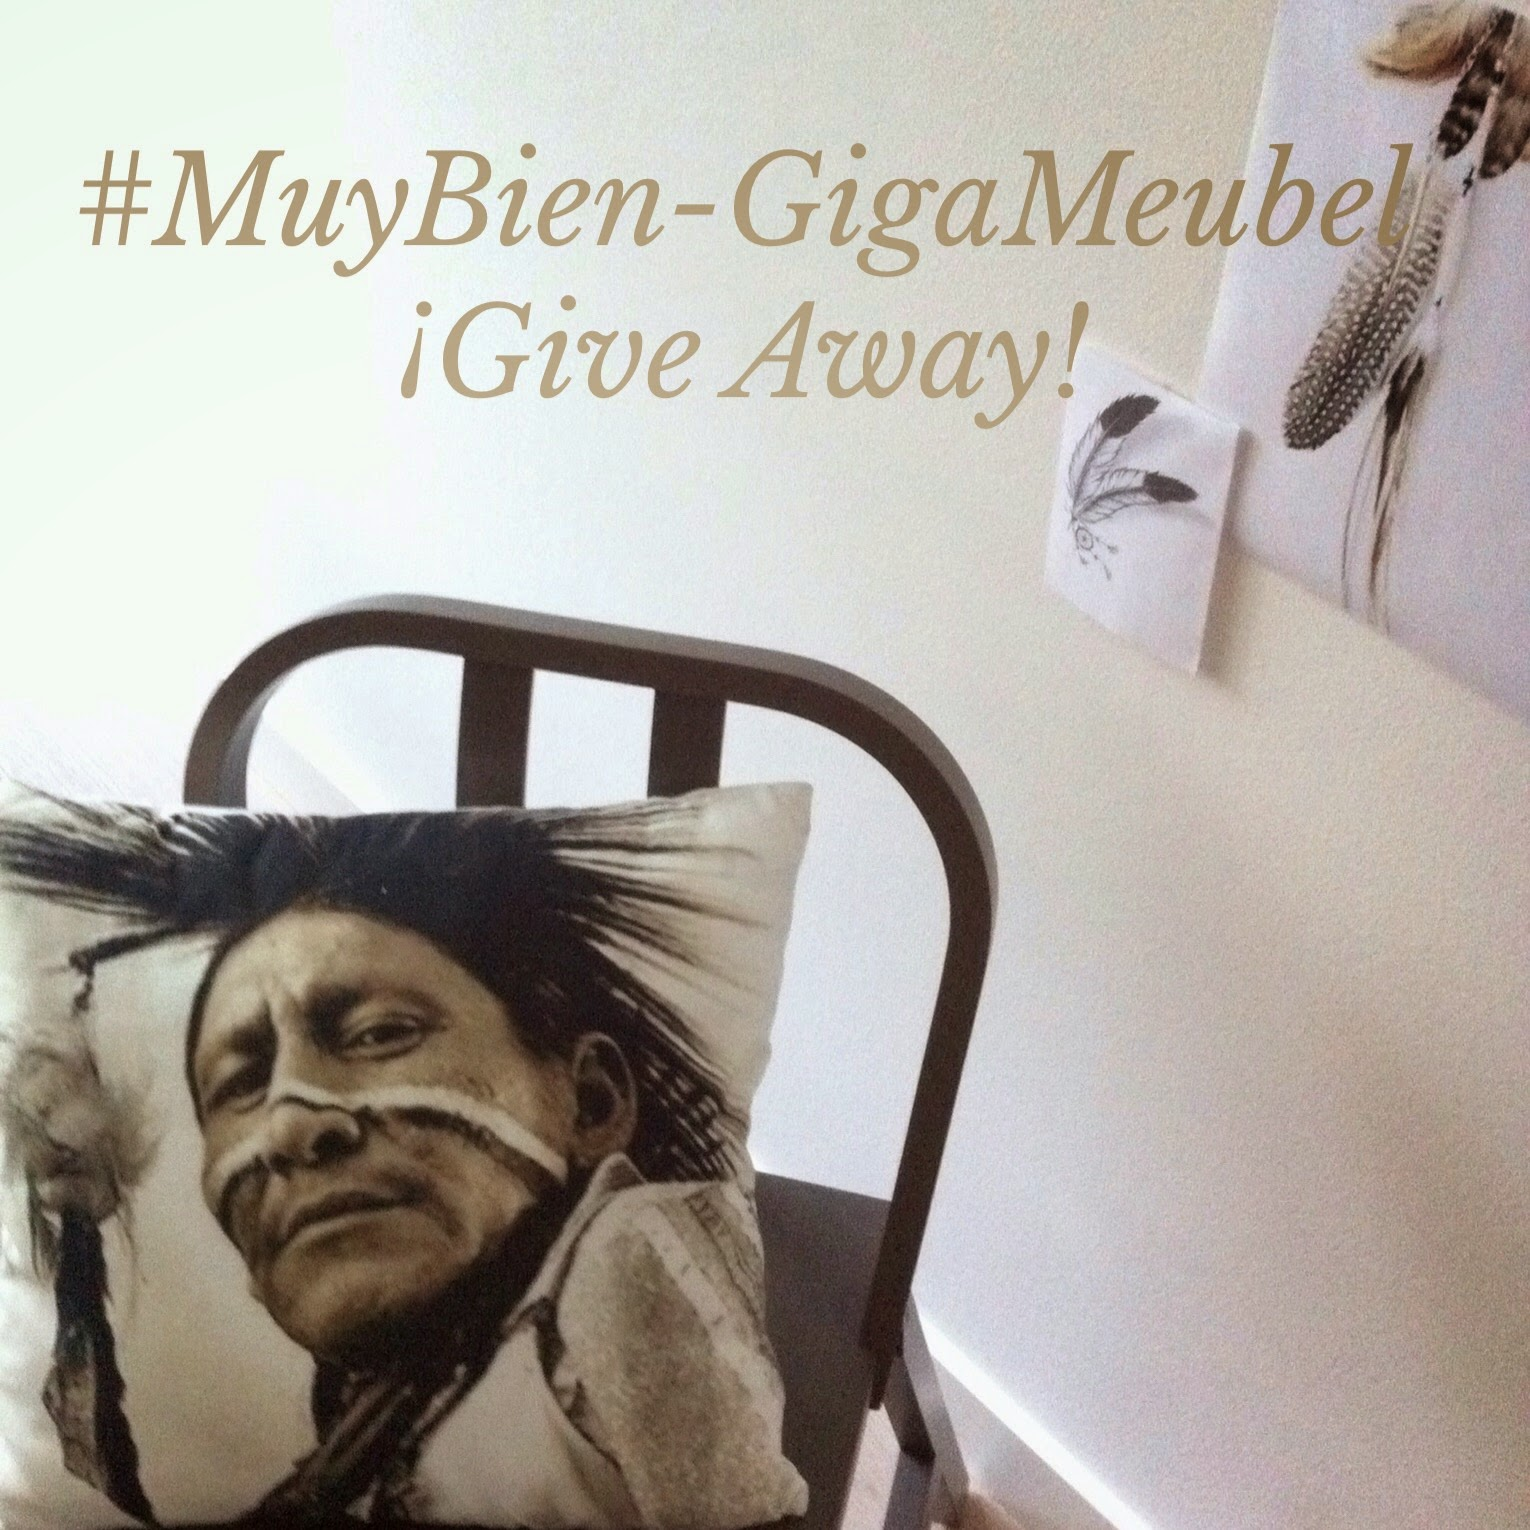 ¡Join the Give Away by Giga Meubel!